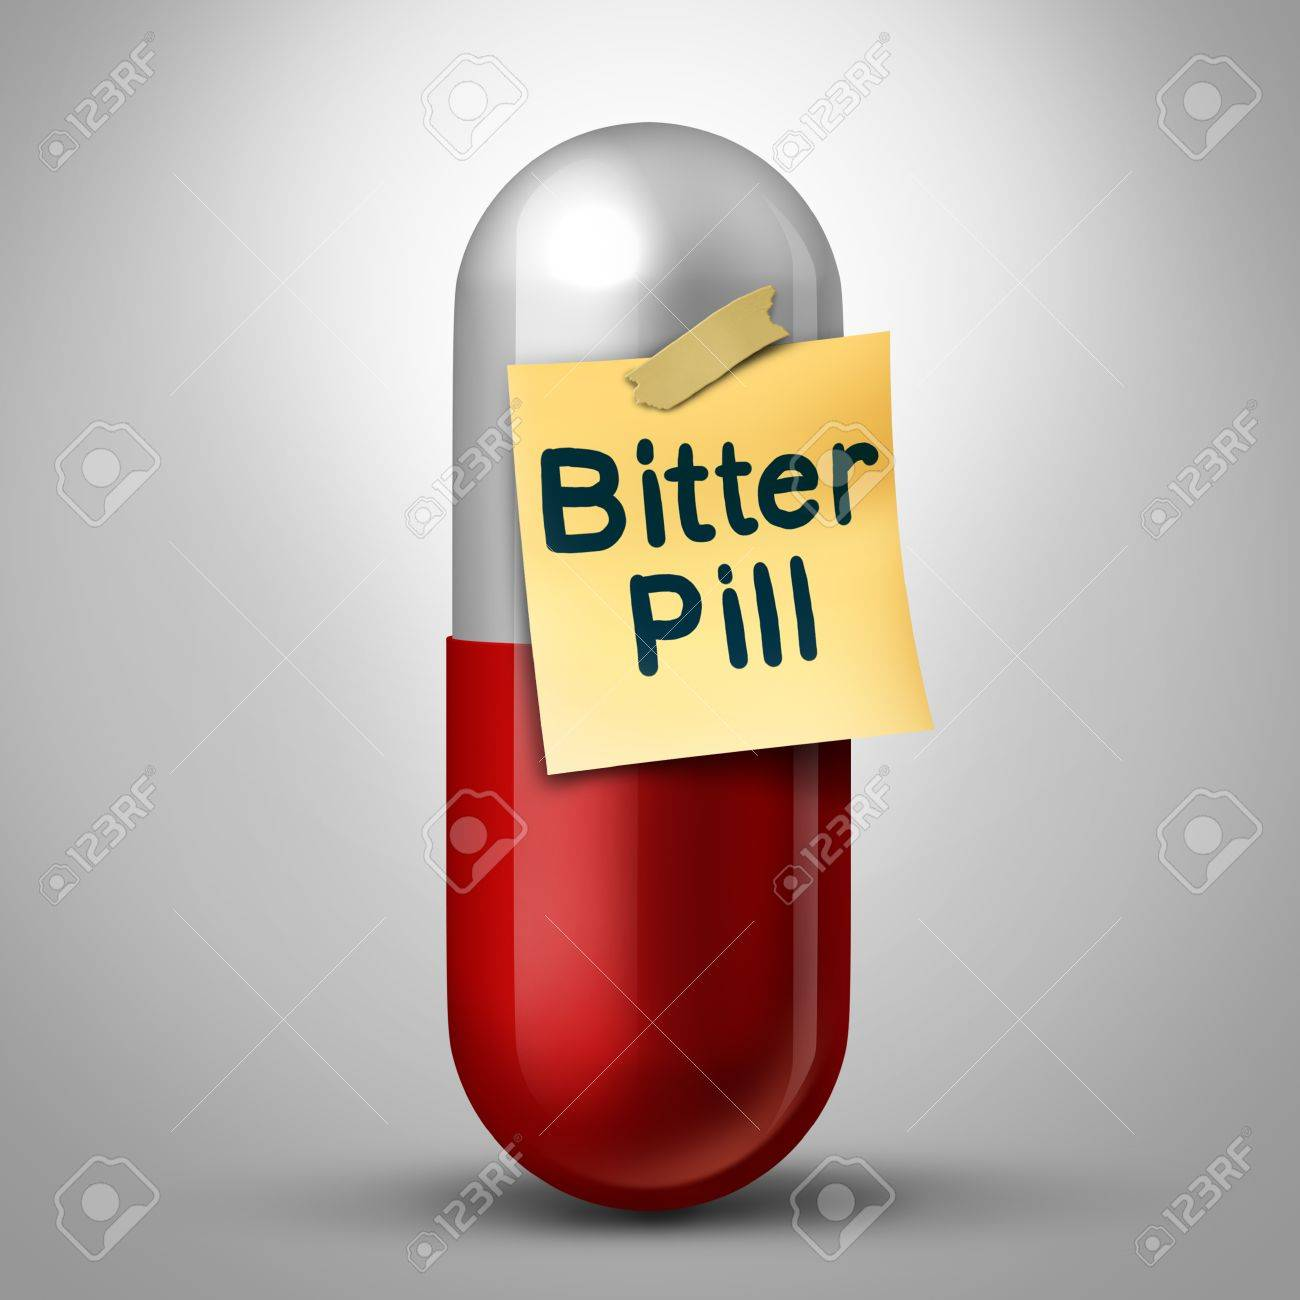 Name:  86893294-bitter-pill-to-swallow-concept-as-a-capsule-medication-with-a-note-as-a-medicine-symbol.jpg Views: 974 Size:  87.4 KB